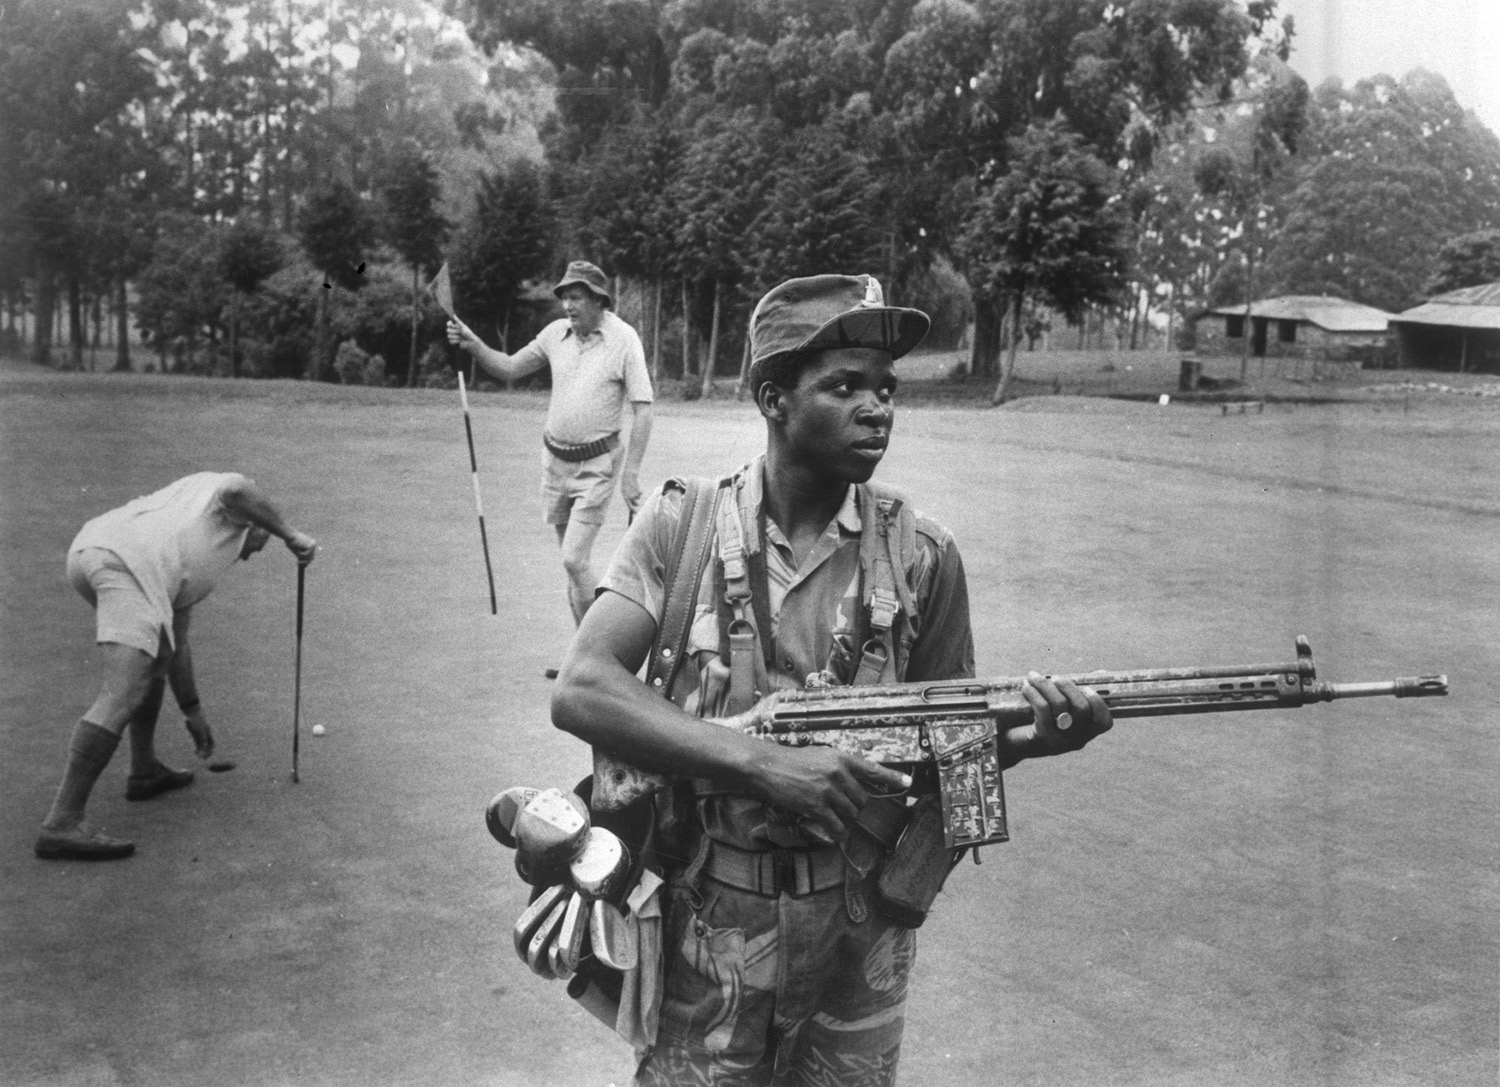 An armed guard provides security for white Rhodesian golfers at the Leopard Rock Hotel, Manicaland, 1978. Eddie Adams / Press Association Images